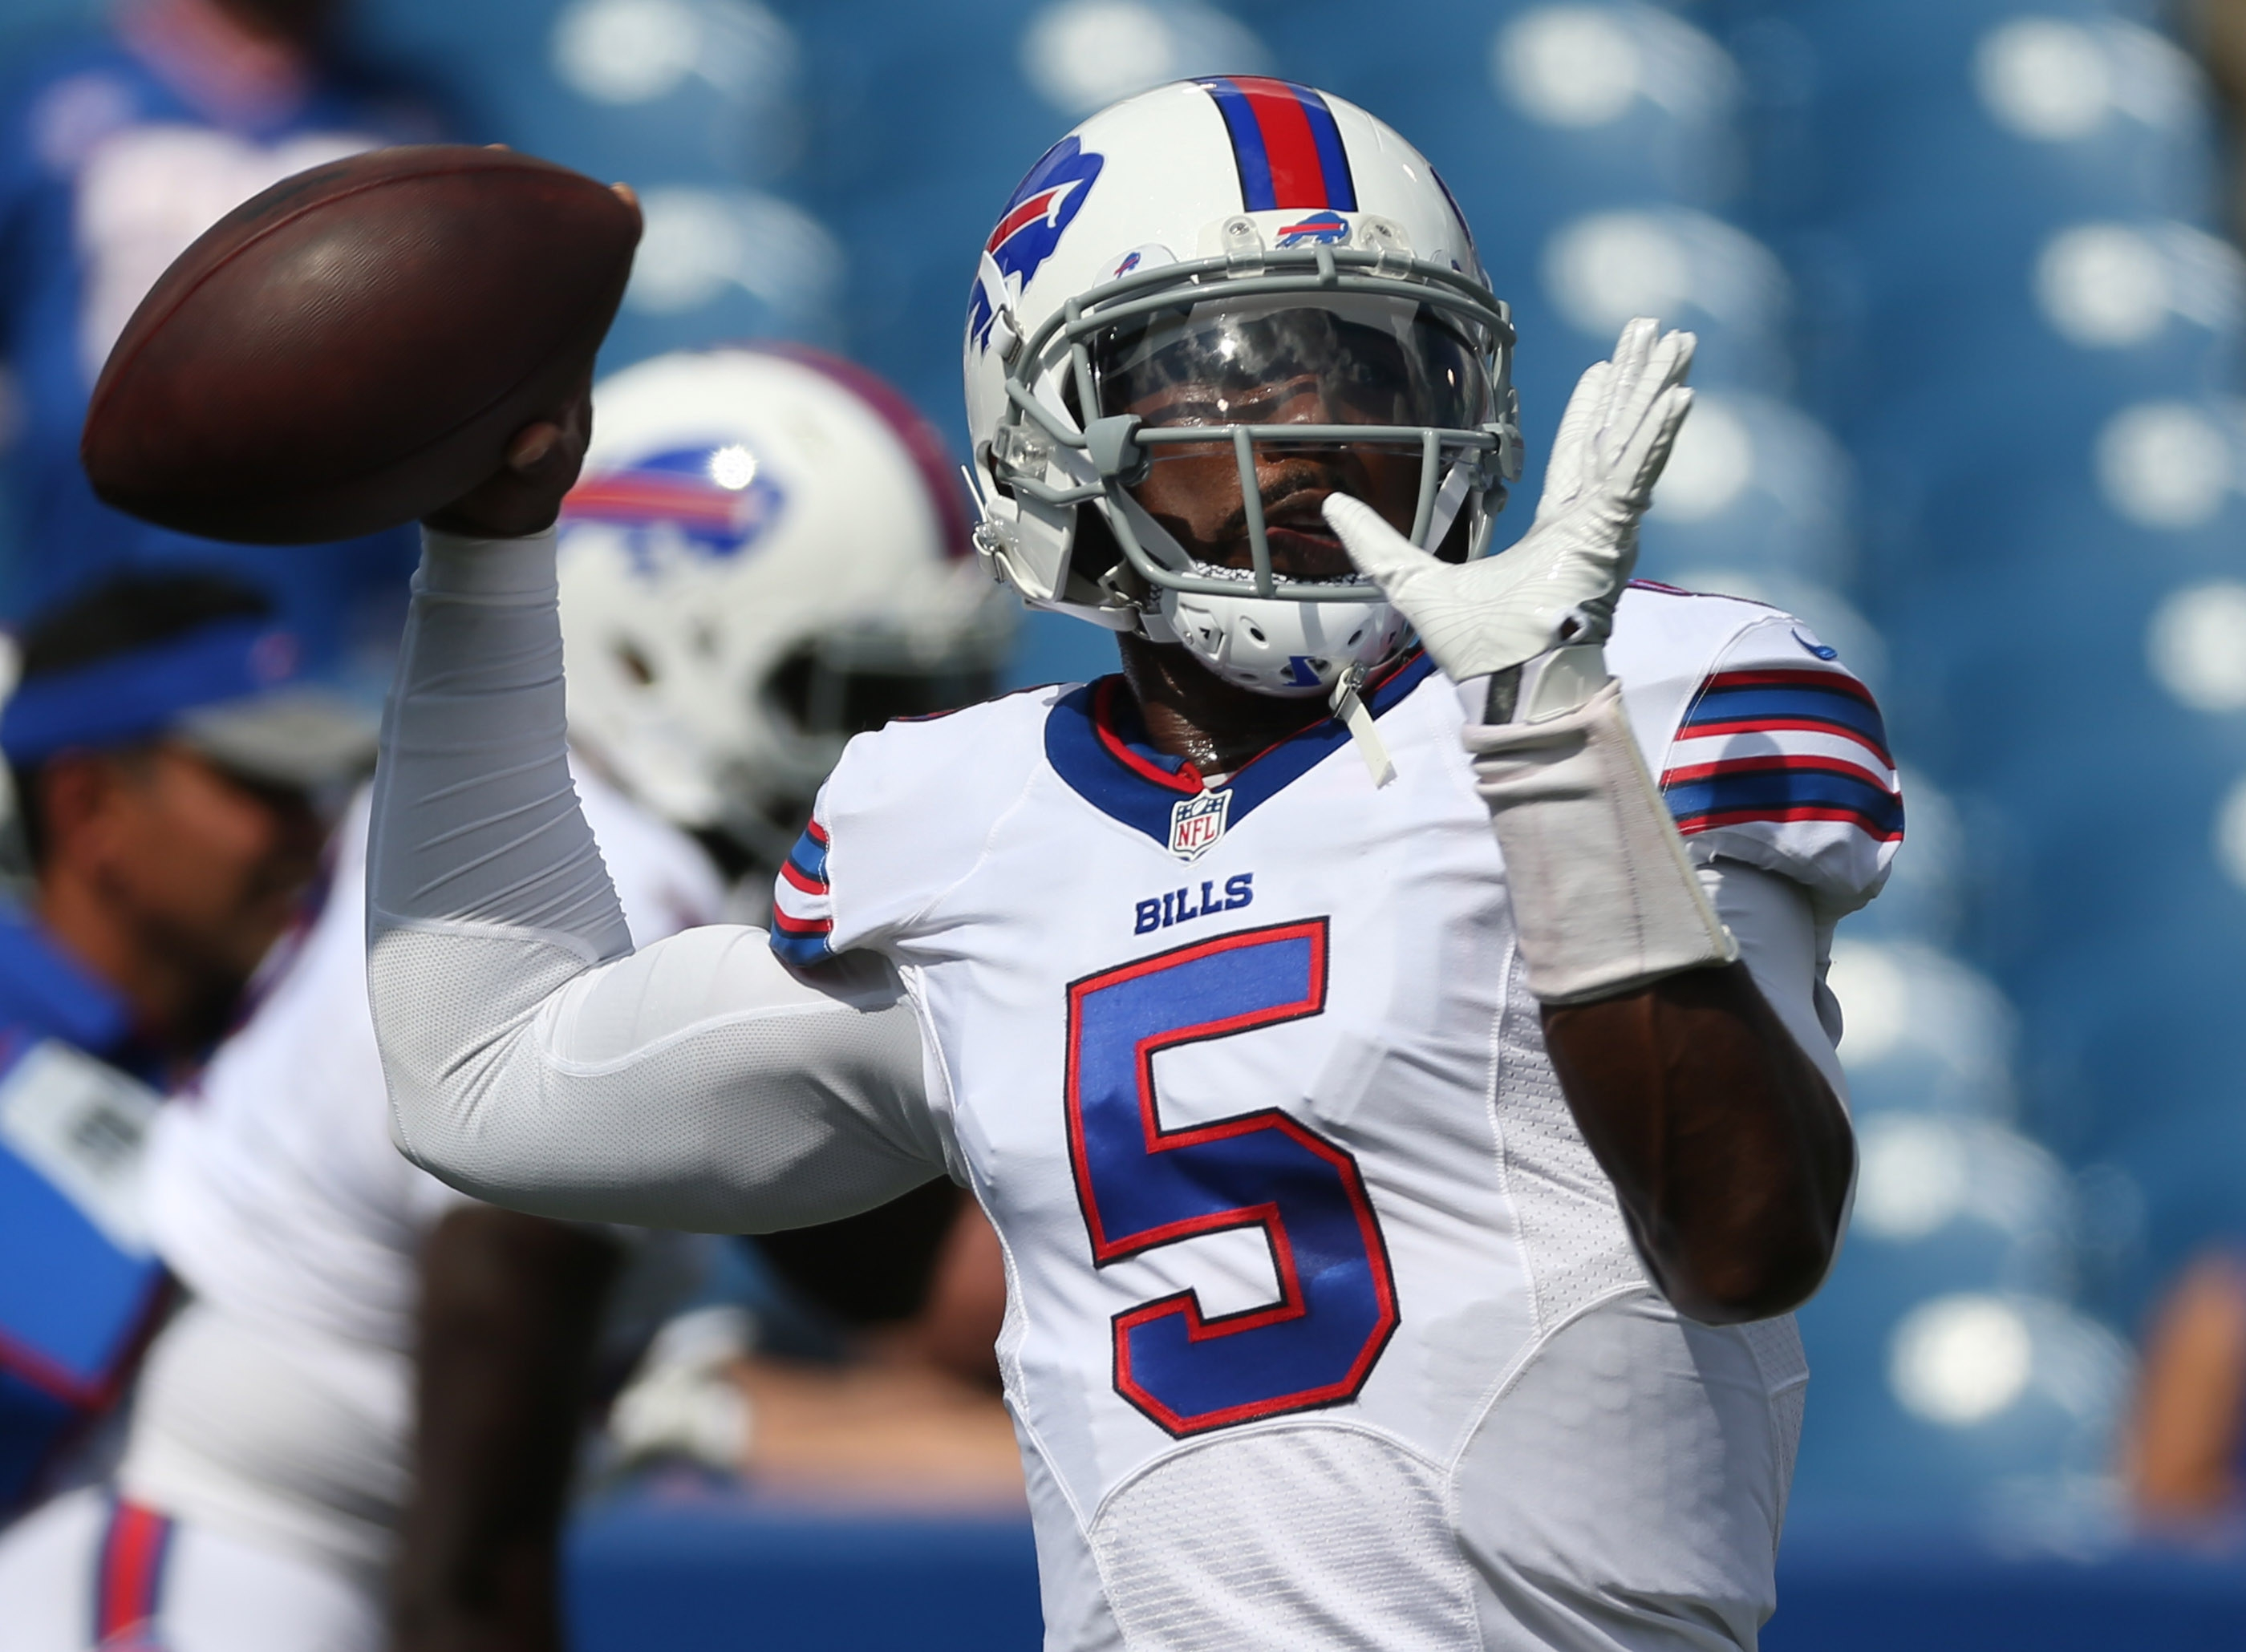 If Tyrod Taylor continues to progress, that's a good thing for the Bills.